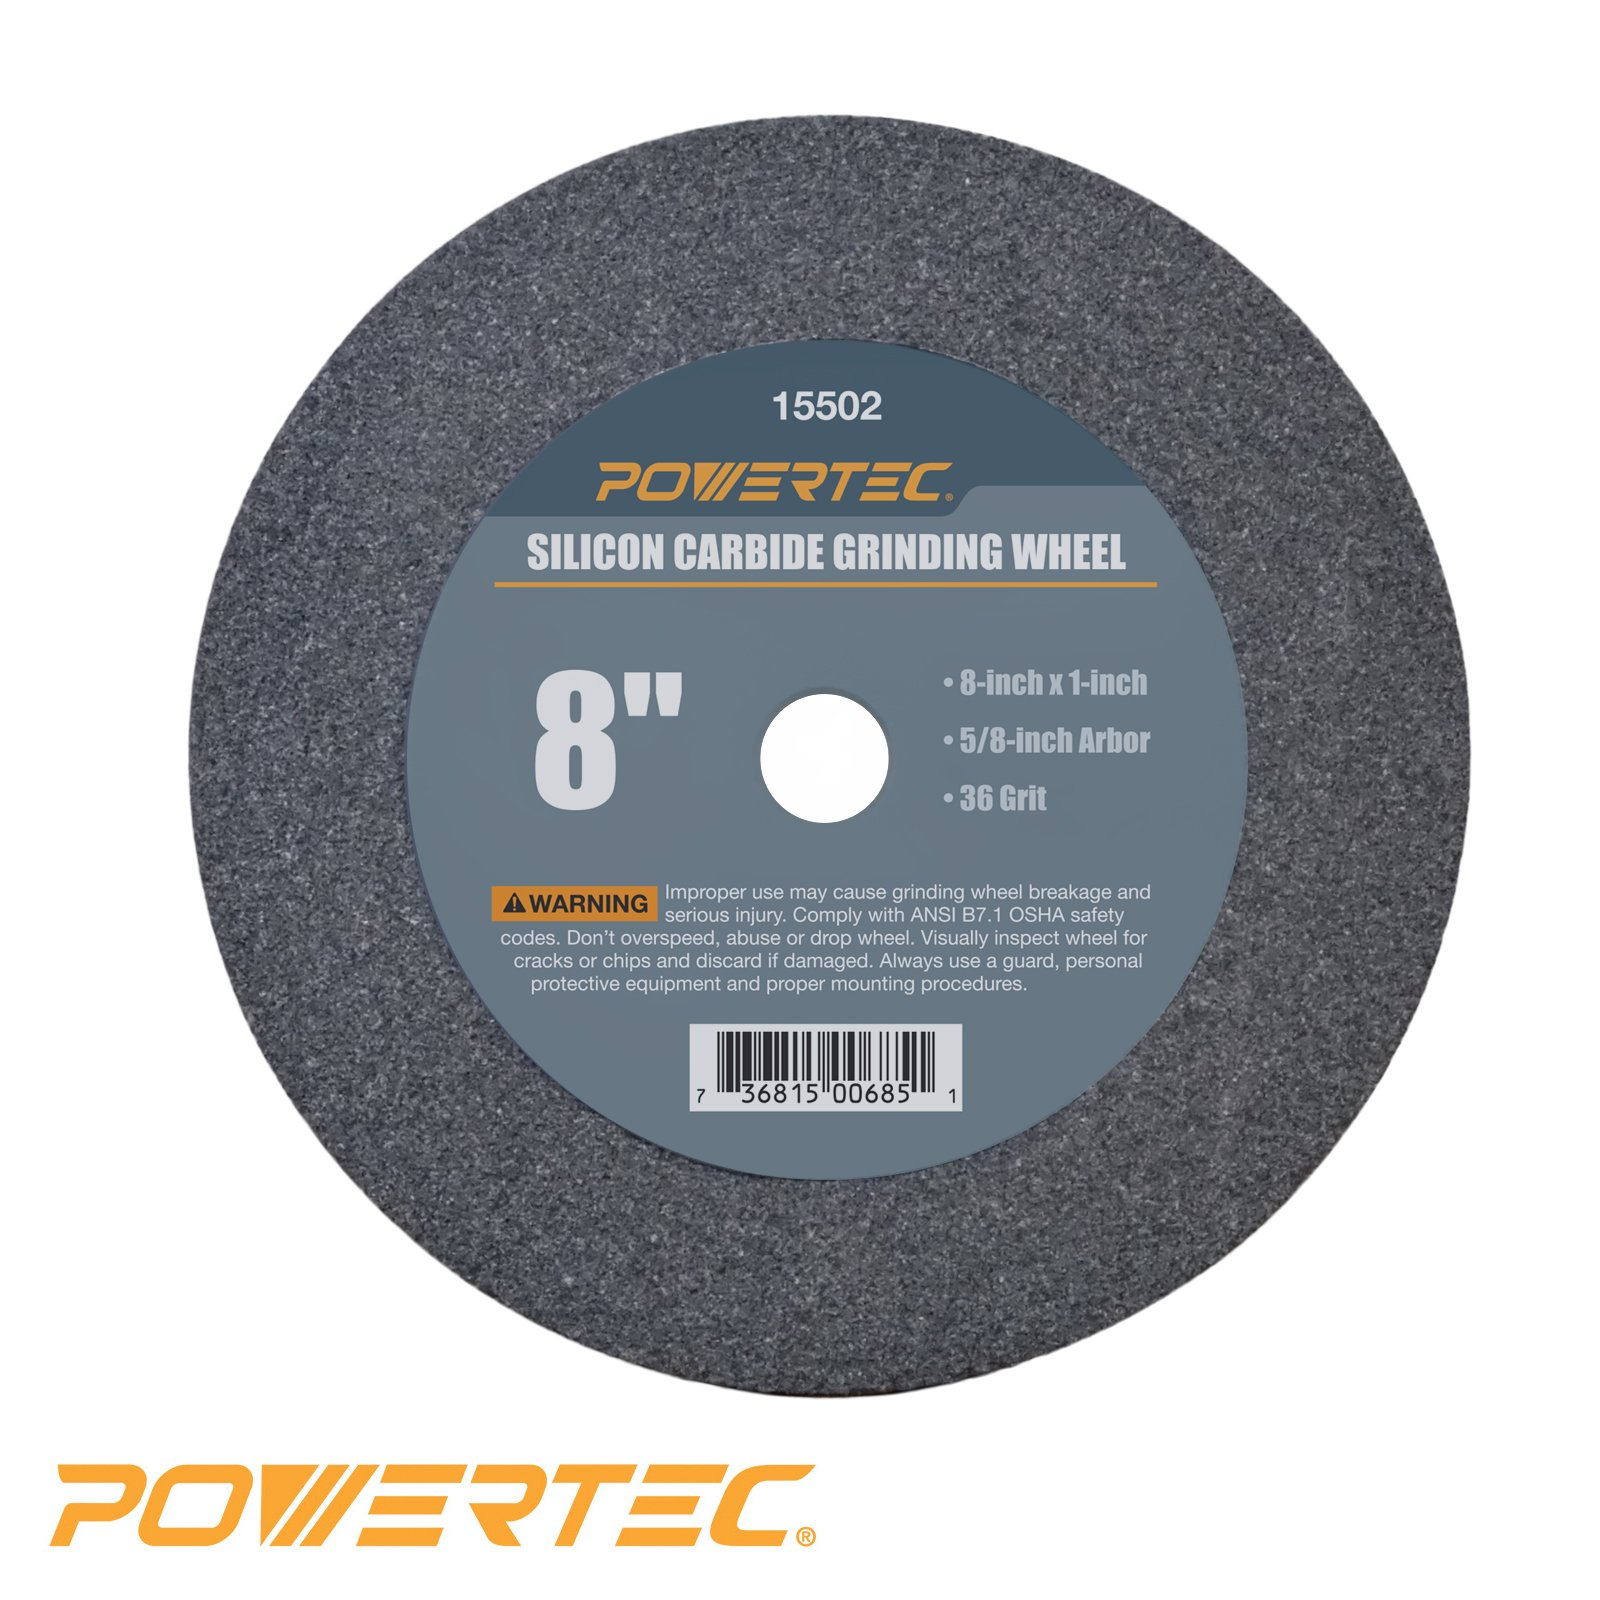 POWERTEC 15502 5/8'' Arbor 36-Grit Silicon Carbide Grinding Wheel, 8'' by 1''